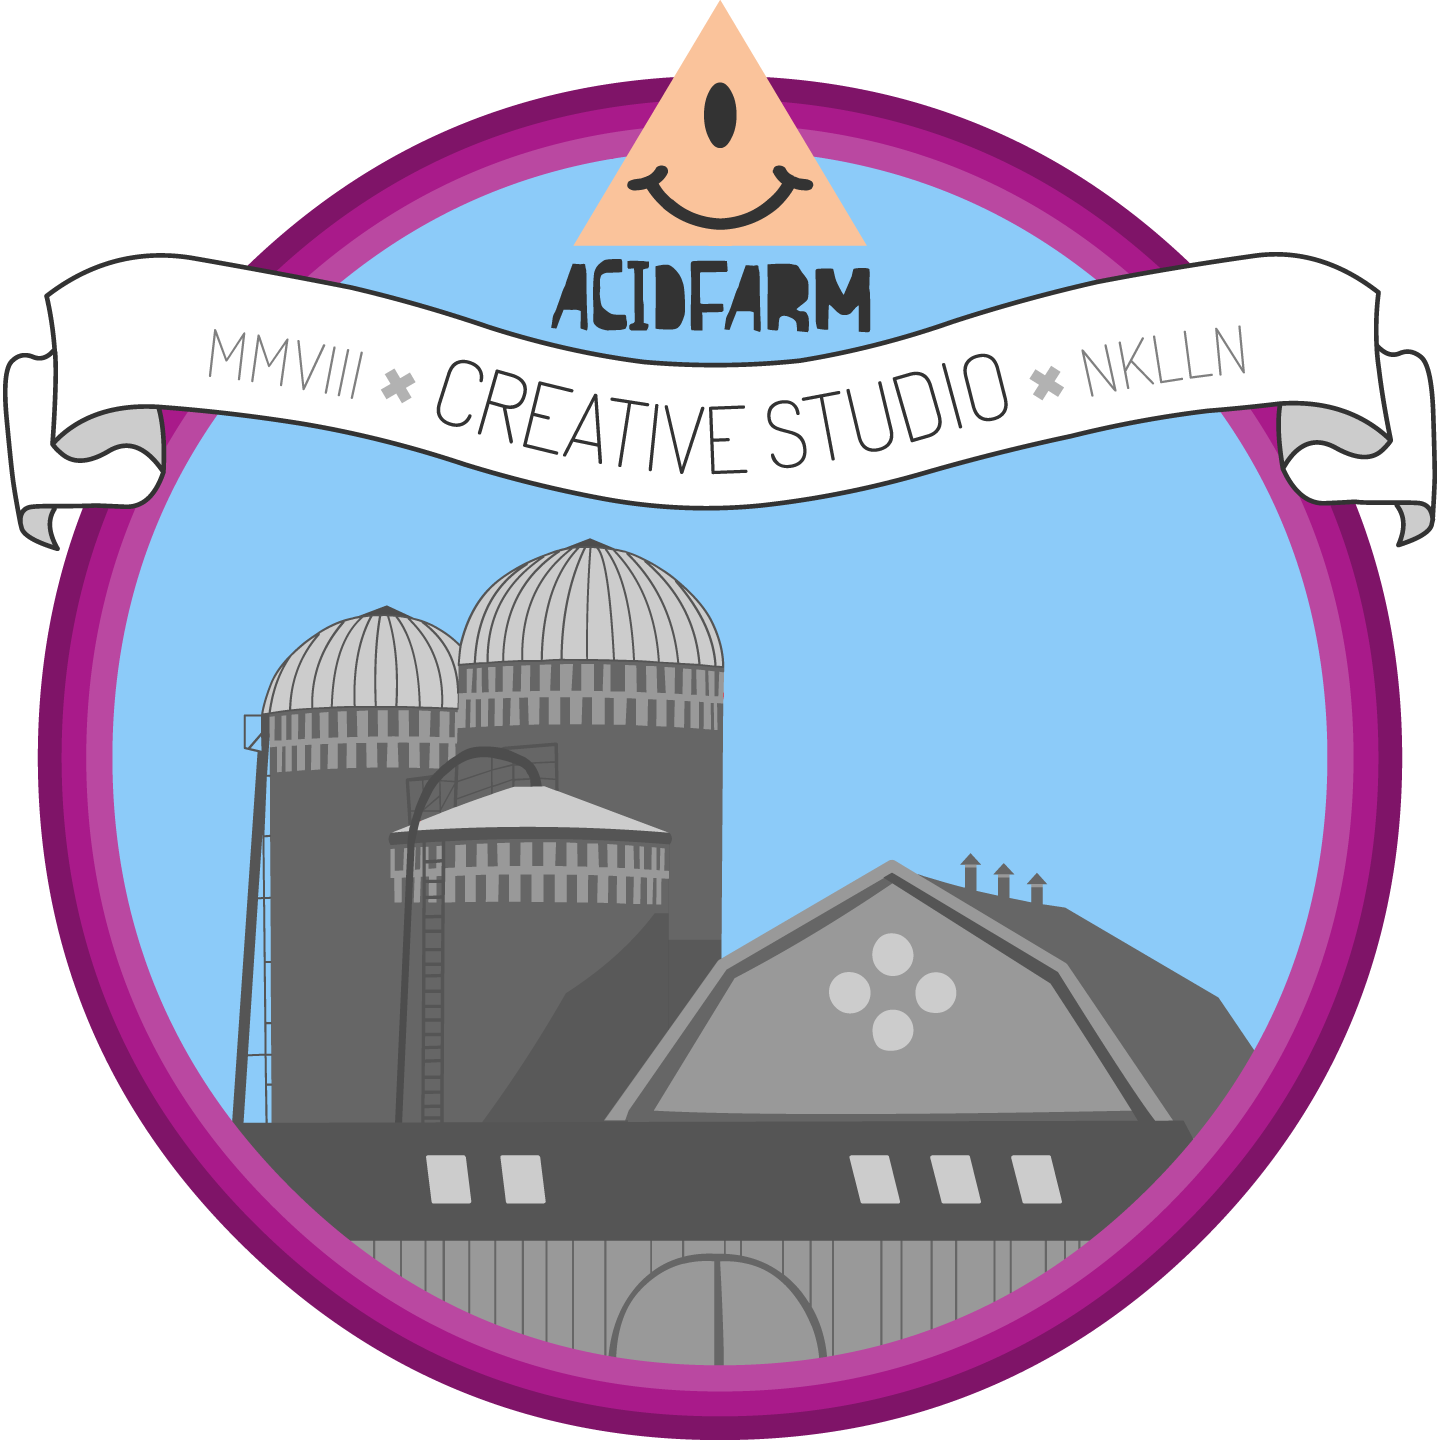 ACIDFARM's Seal